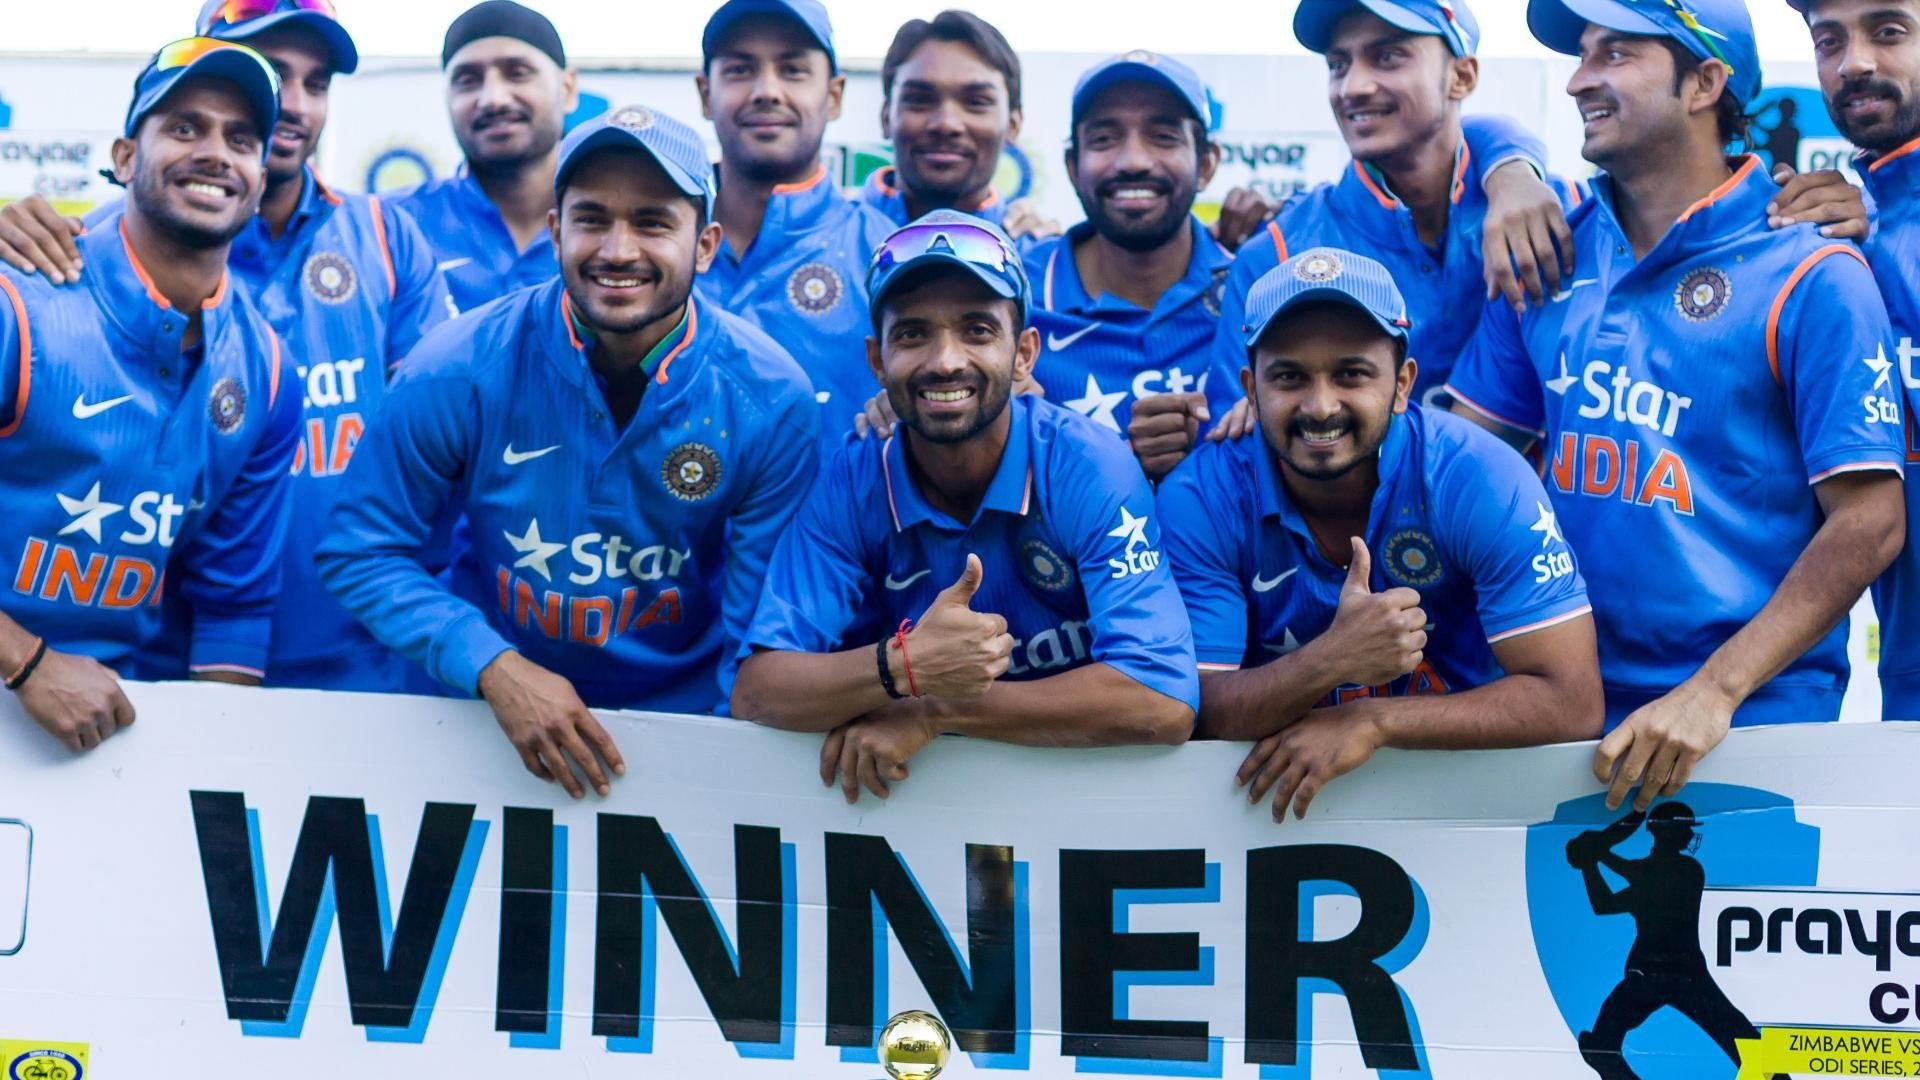 Indian Cricket Team Hd Wallpapers Indian Cricket Team Wallpapers Hd 1920x1080 Download Hd Wallpaper Wallpapertip